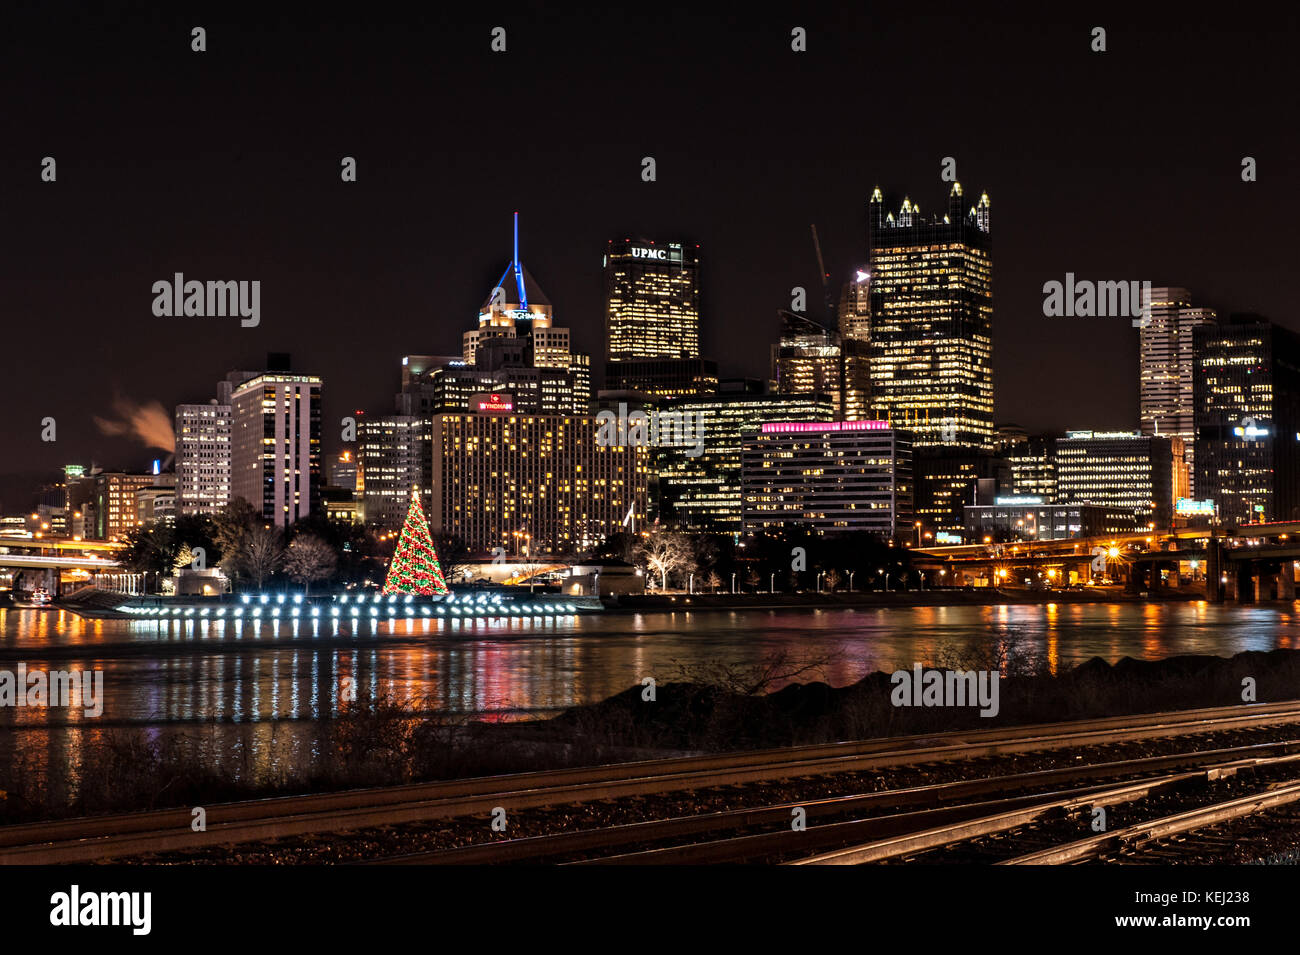 Pittsburgh Skyline Christmas 2021 Pittsburgh Skyline During Light Up Night Several Skyscrapers Christmas Tree And Allegheny River Waterfront In Pennsylvania Usa Stock Photo Alamy